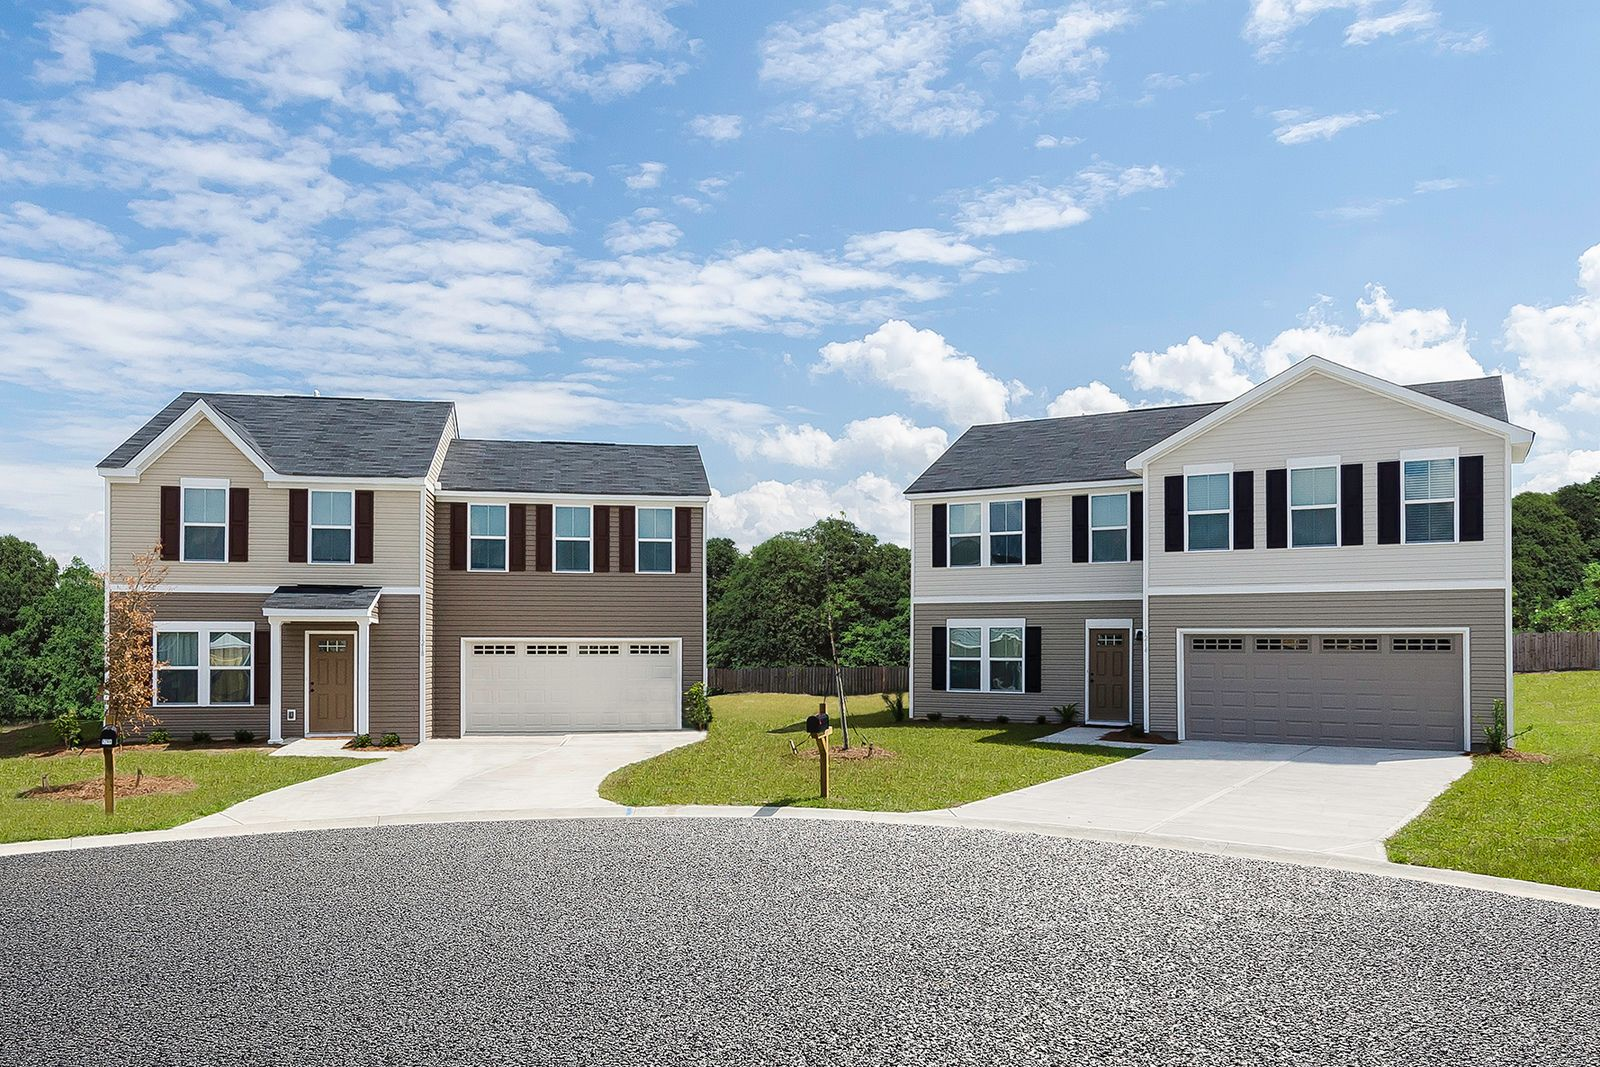 Live in an ideal Lexington Location:Affordable new homes offering the best value minutes to I-20 and Hwy 6